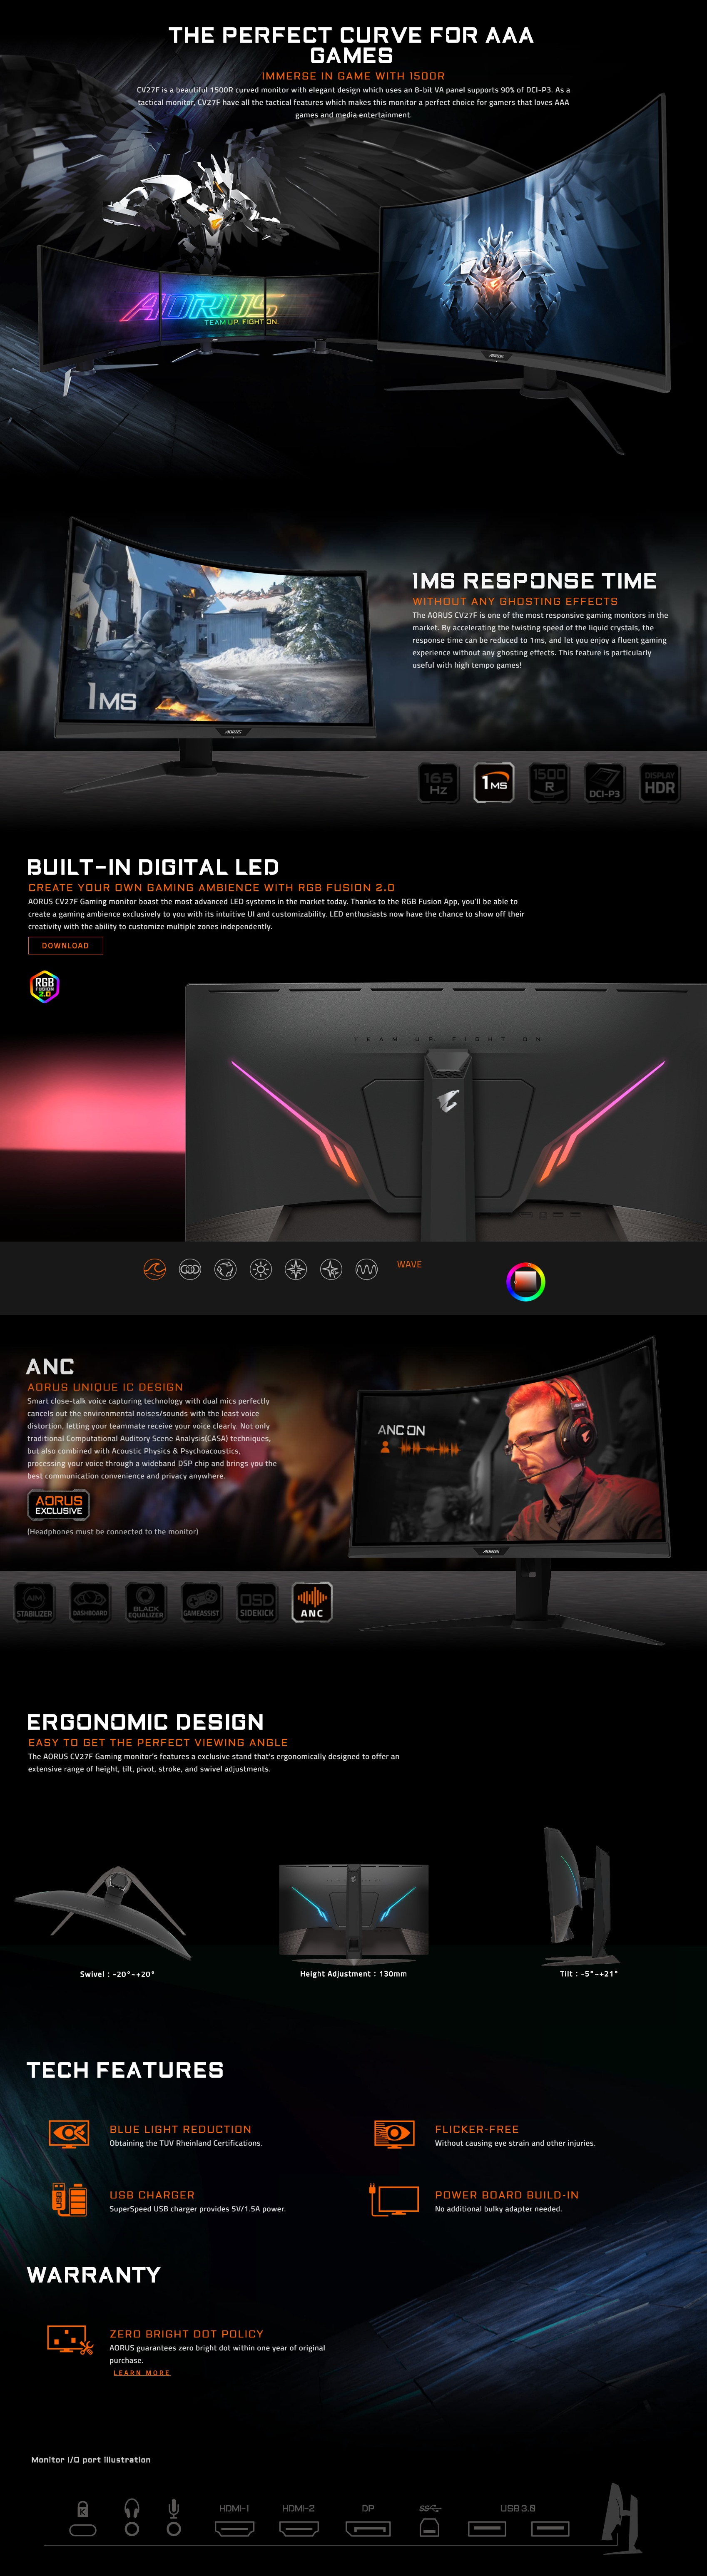 """A large marketing image providing additional information about the product Gigabyte Aorus CV27F 27"""" Full HD FreeSync Curved 165Hz 1MS HDR400 VA LED Gaming Monitor - Additional alt info not provided"""